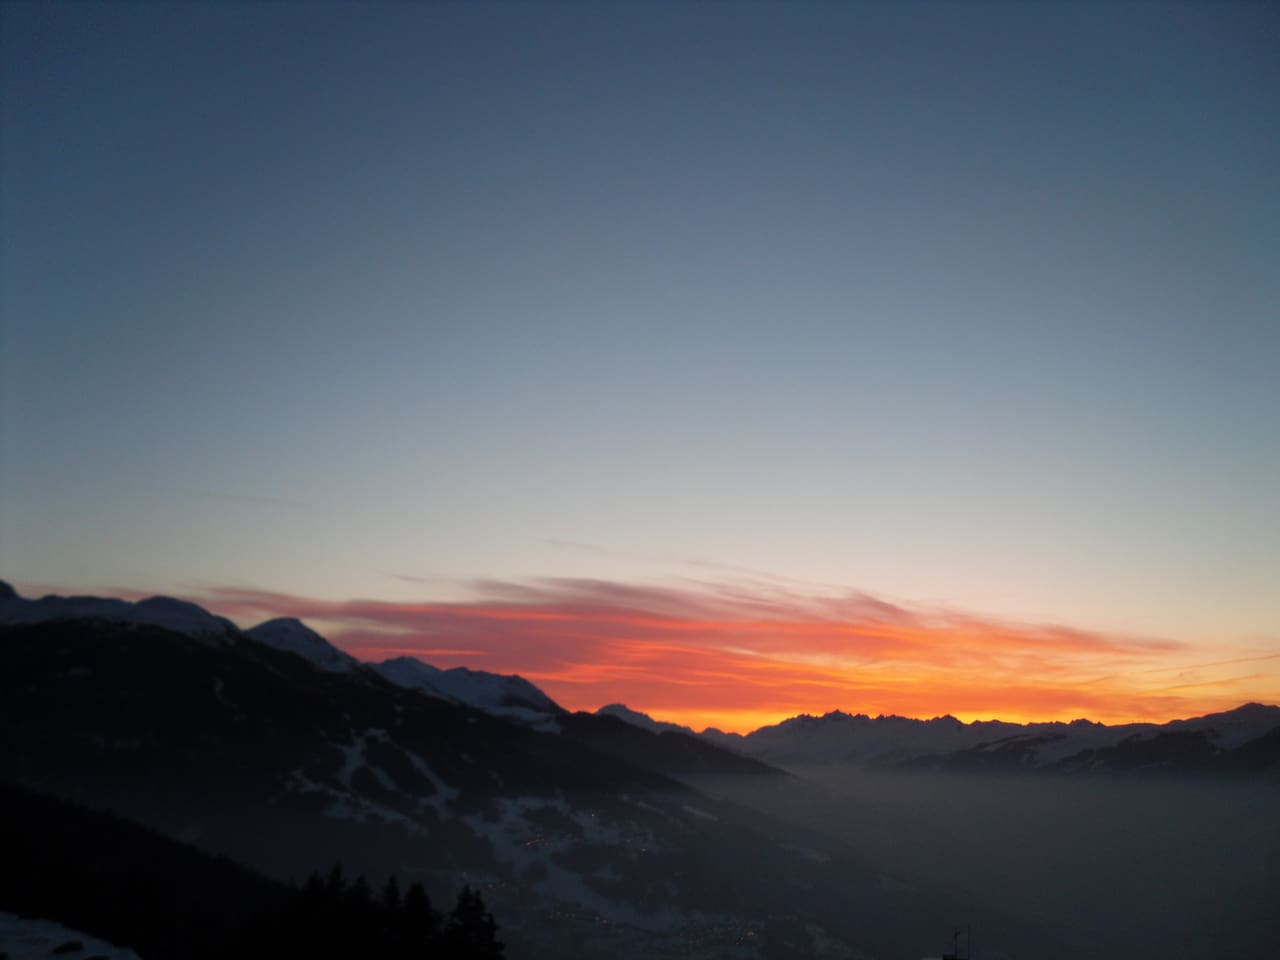 Sunset view from my balcony in Les Arcs.